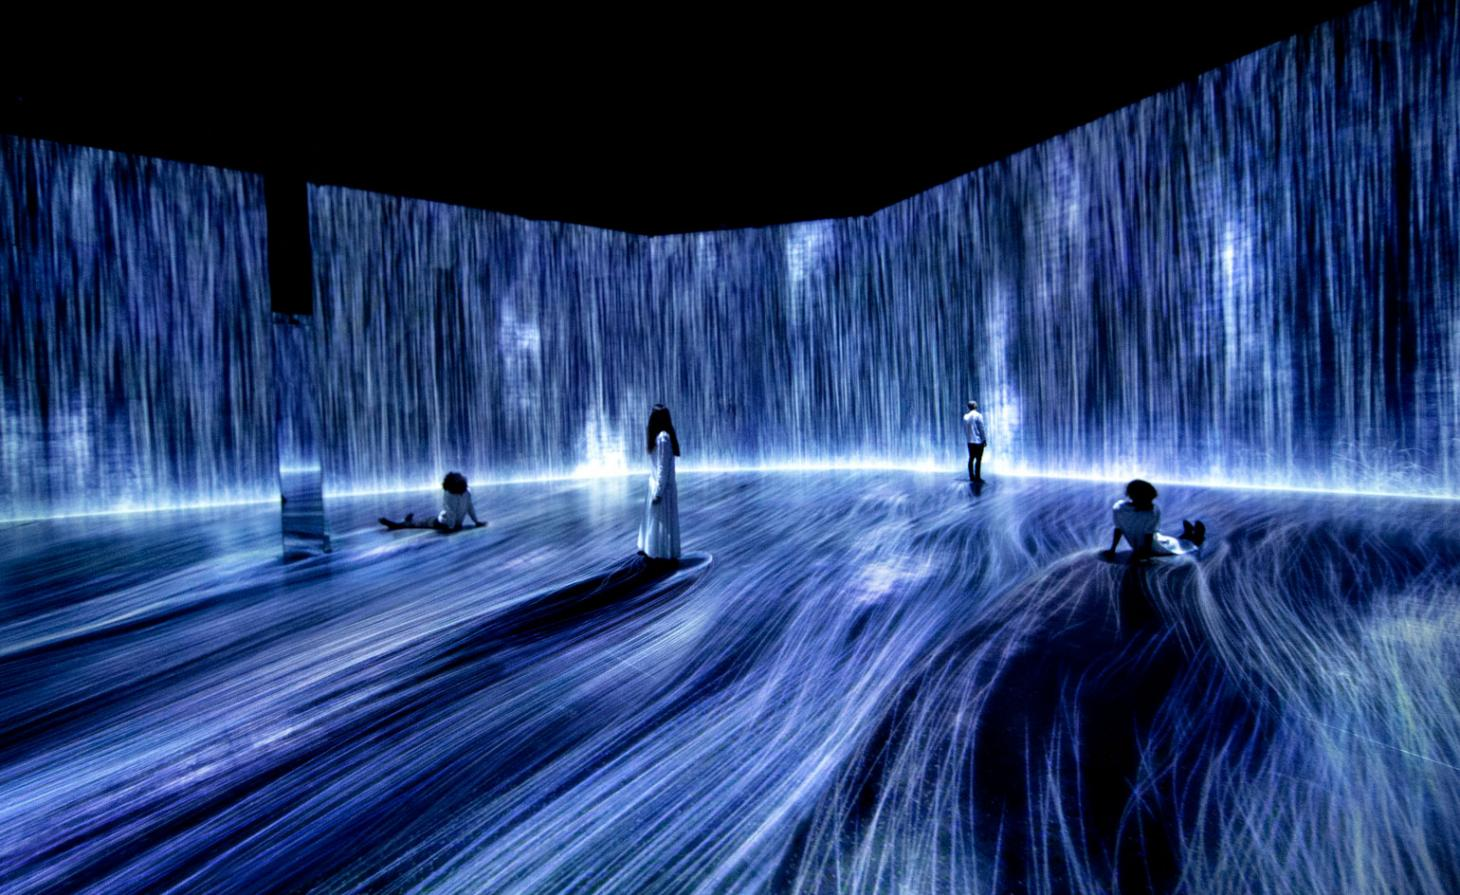 People in a hall surrounded by a water effect